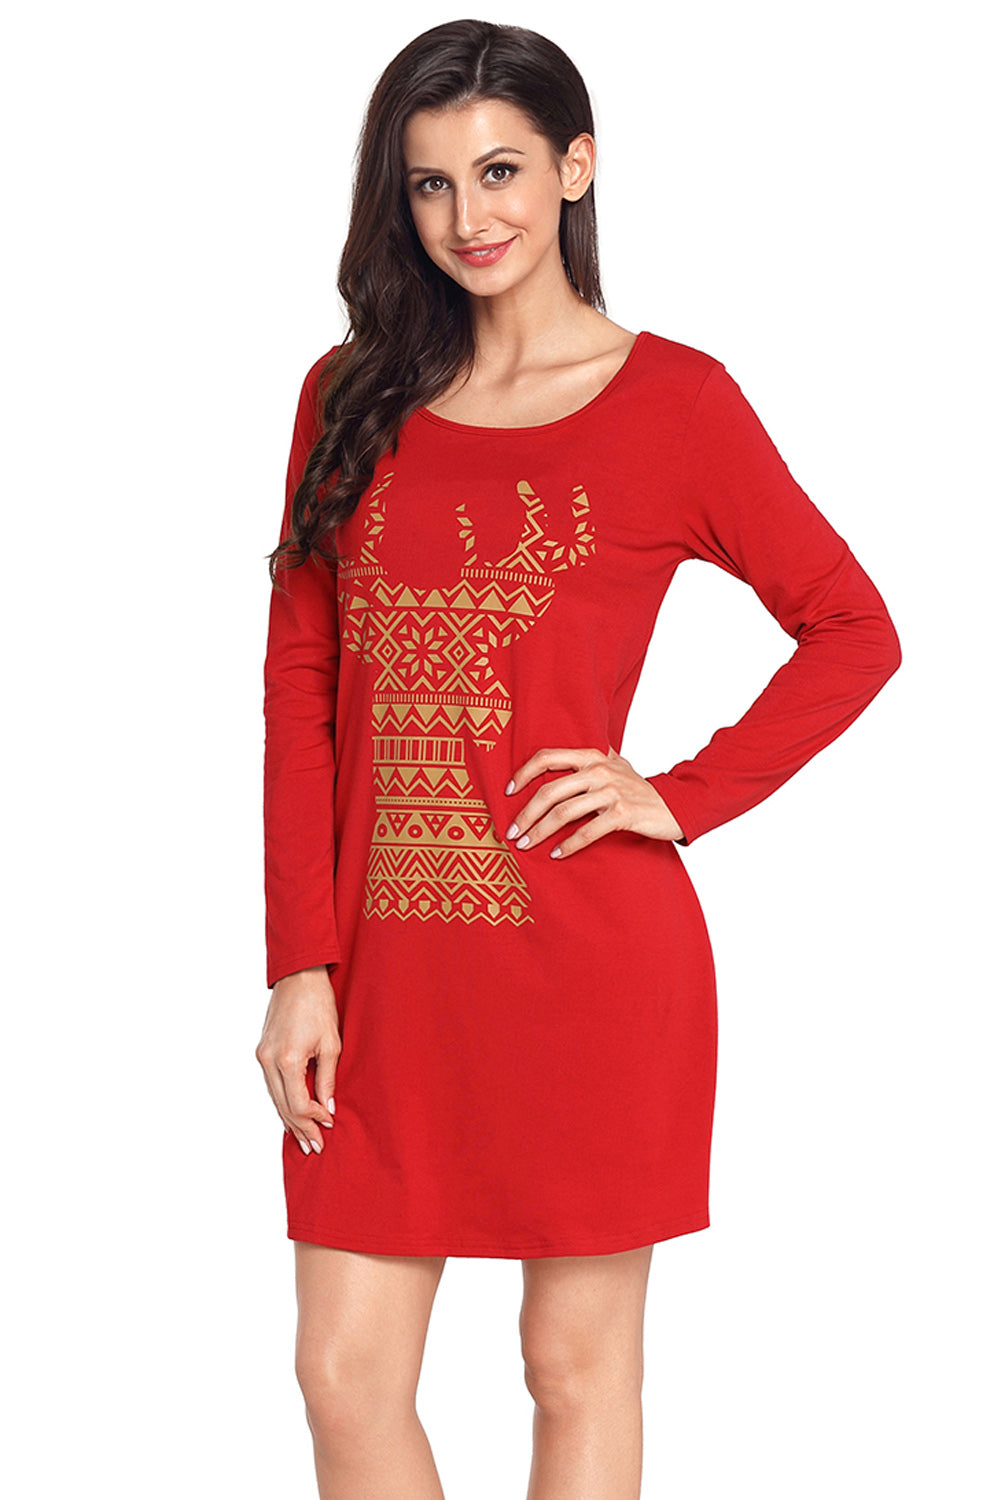 Her Fashion Snowflake Reindeer Grey Christmas T-shirt Mini Dress